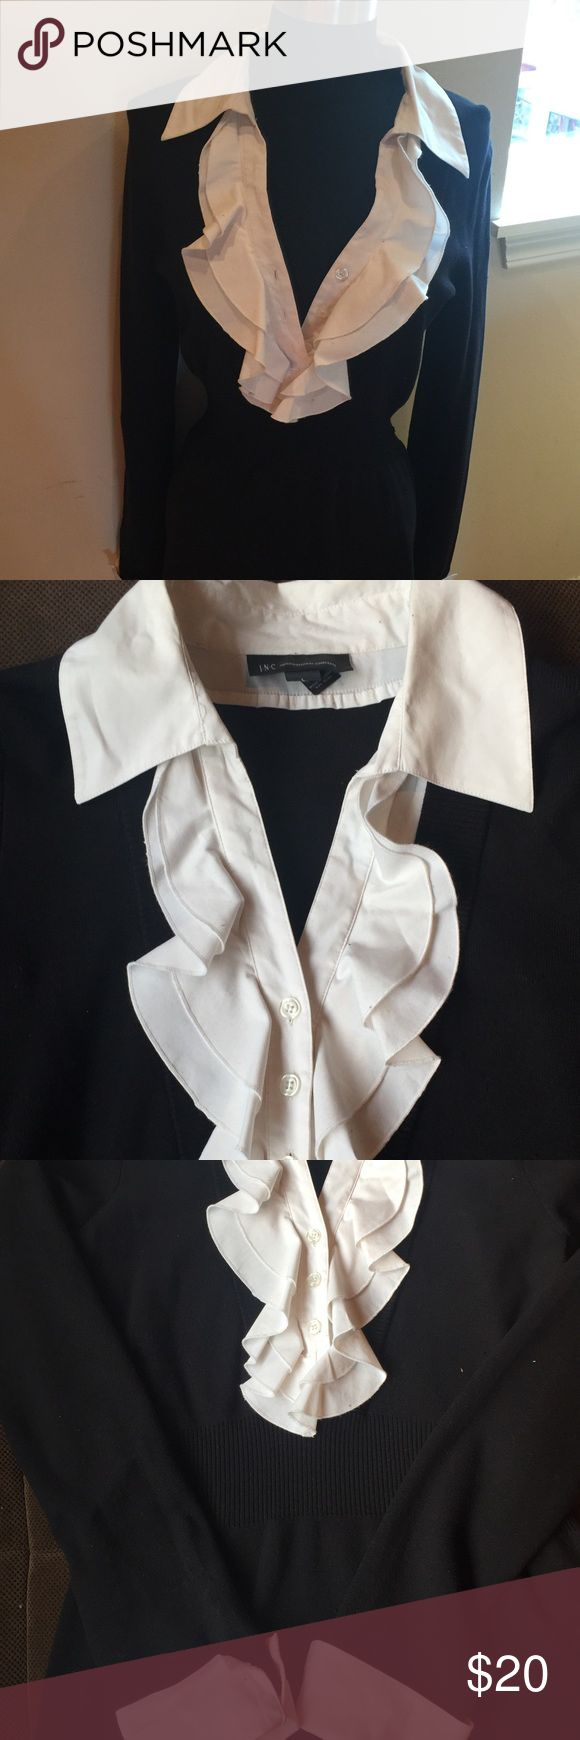 Adorable dress Black, stretch material with gorgeous white ruffled neckline and white folded sleeves. Flattering and looks great with heels or boots. INC International Concepts Dresses Midi